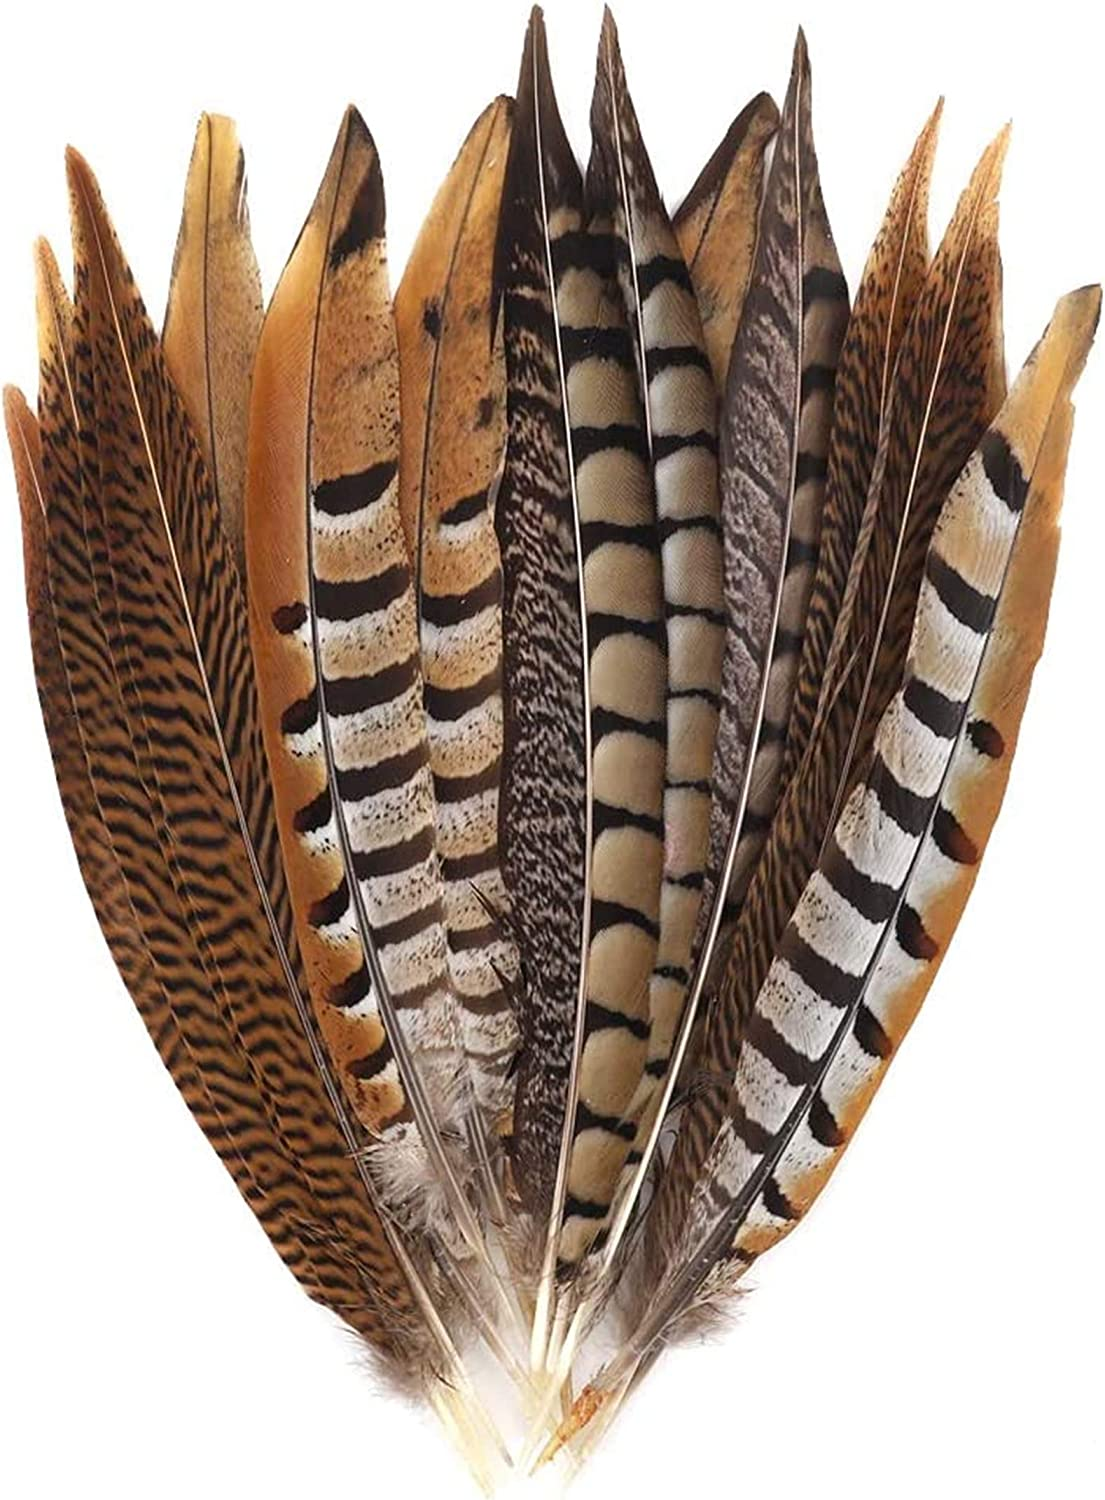 1 GOLDEN Natural Pheasant Feathers 20-30